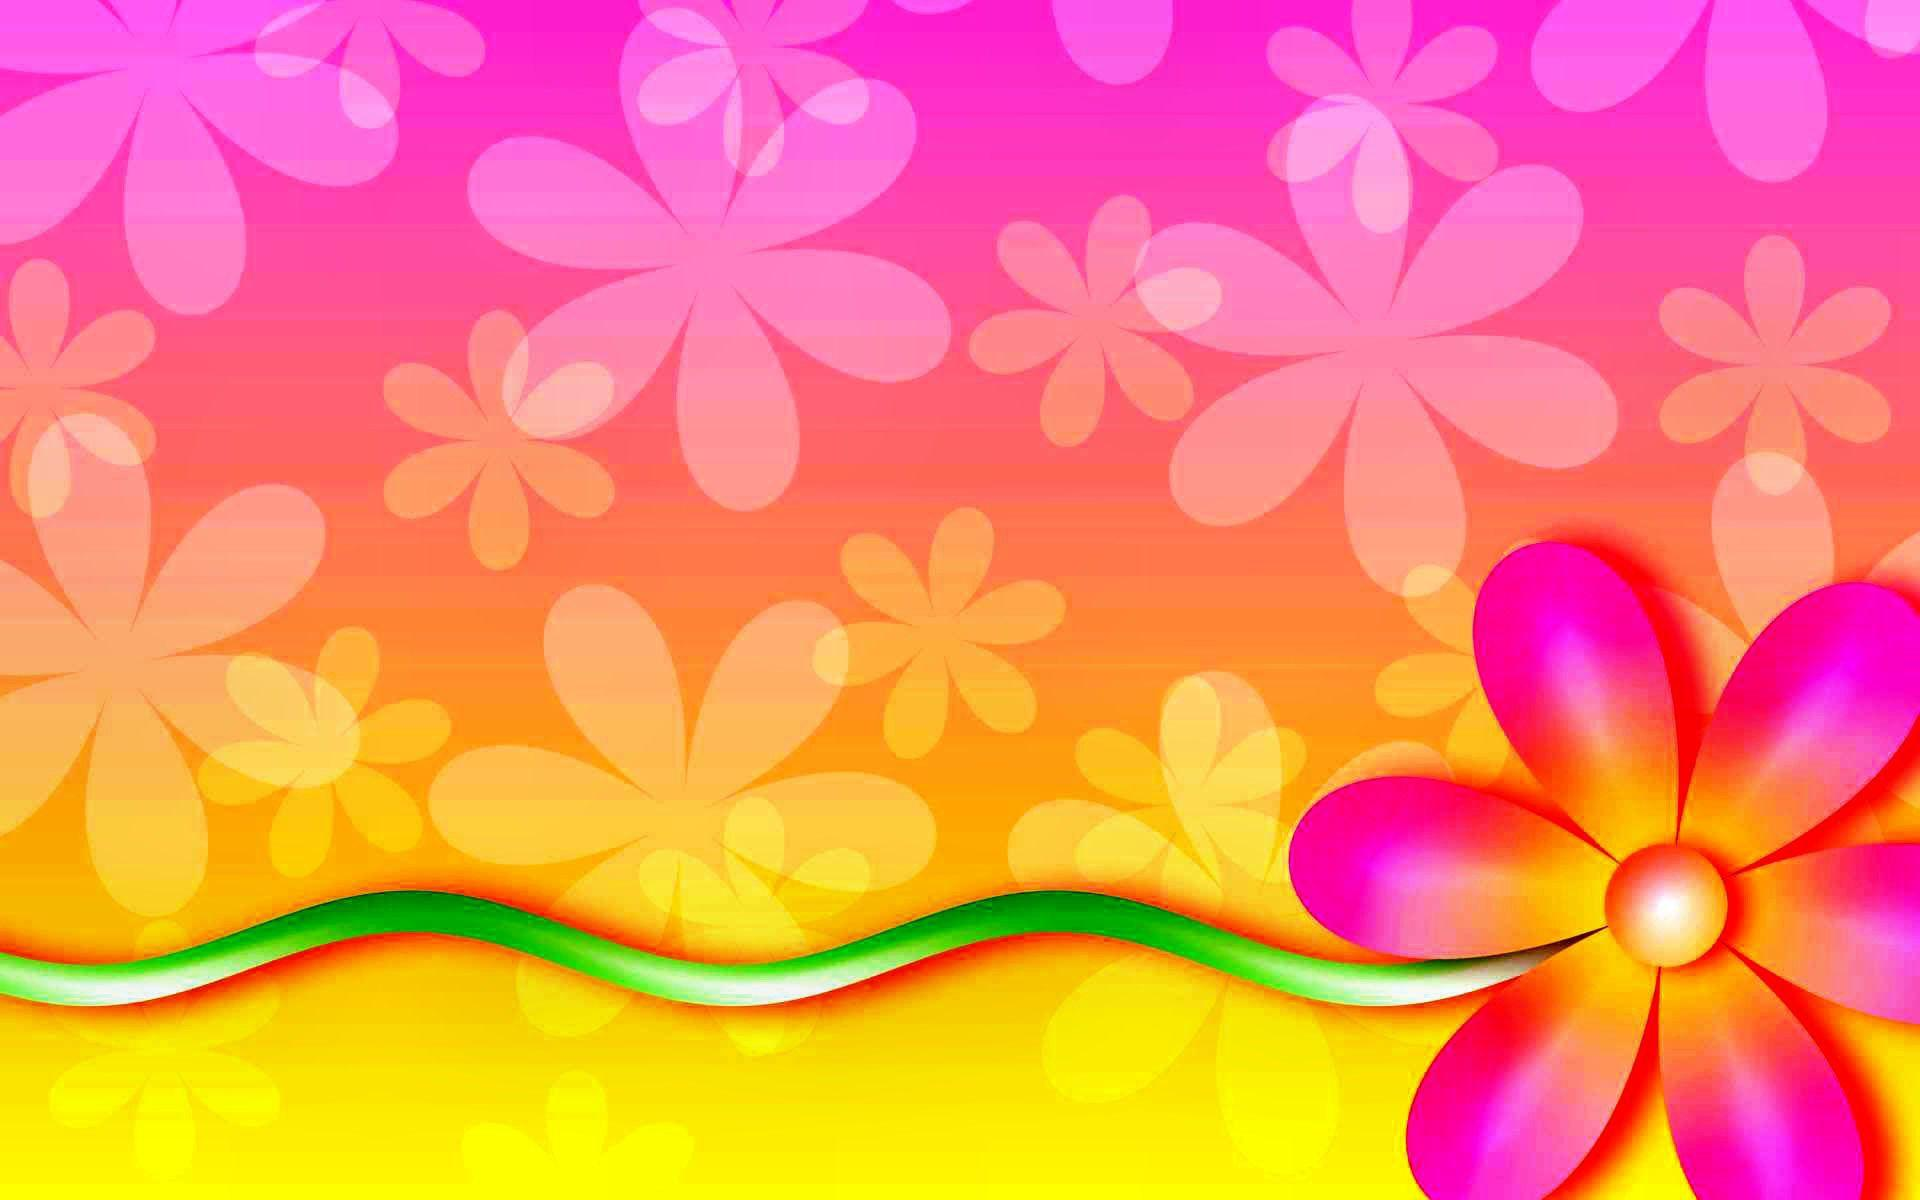 flower power tv wallpaper - photo #3